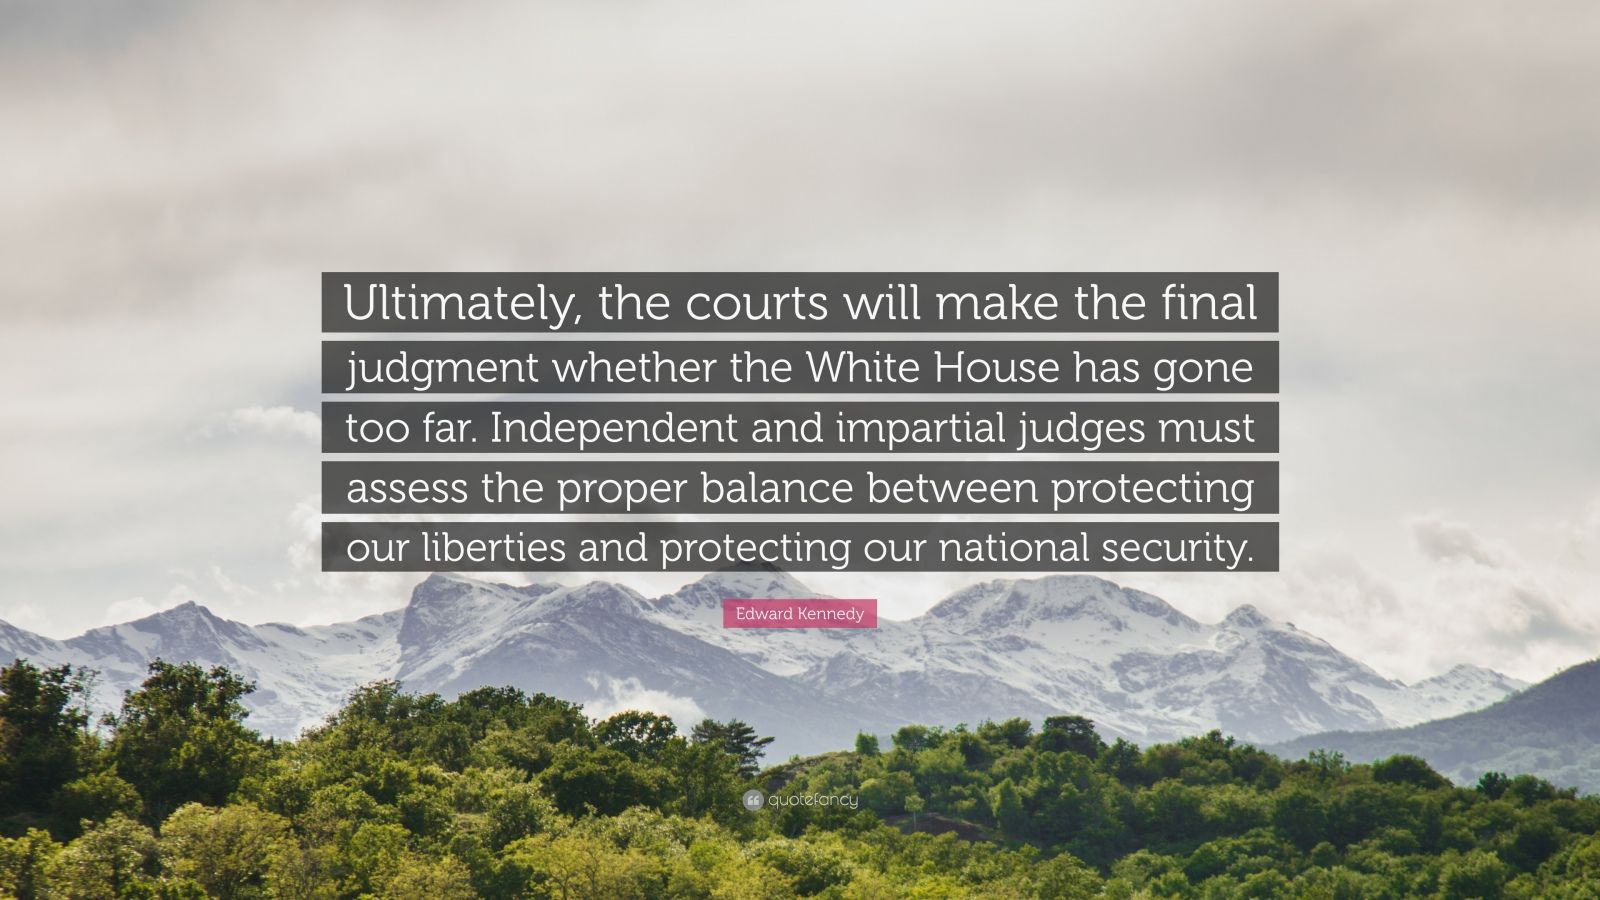 "Edward Kennedy Quote: ""Ultimately, the courts will make the final judgment whether the White House has gone too far. Independent and impartial judges must assess the proper balance between protecting our liberties and protecting our national security."""